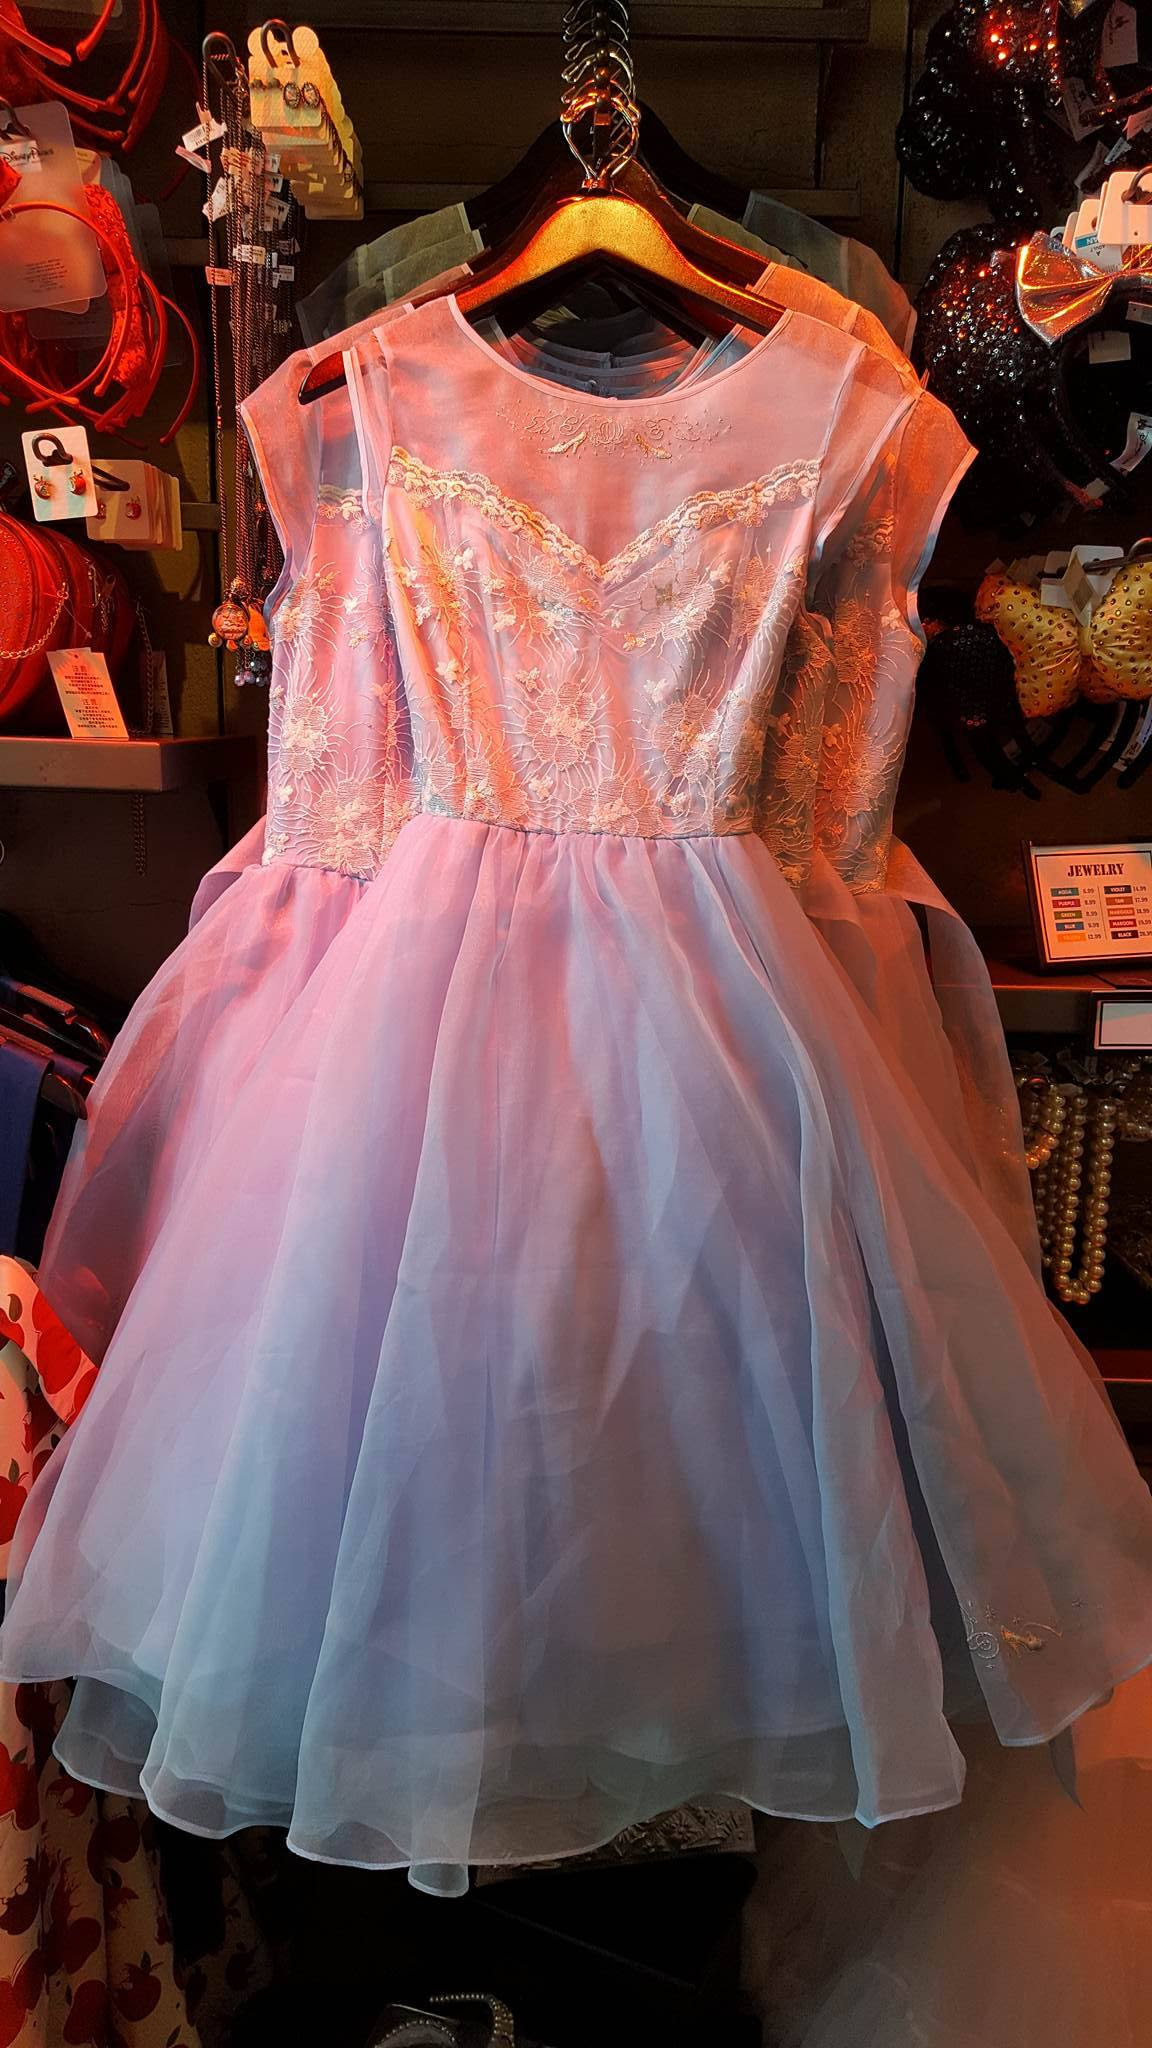 dresses are now restocked at the dress shop in disneyland